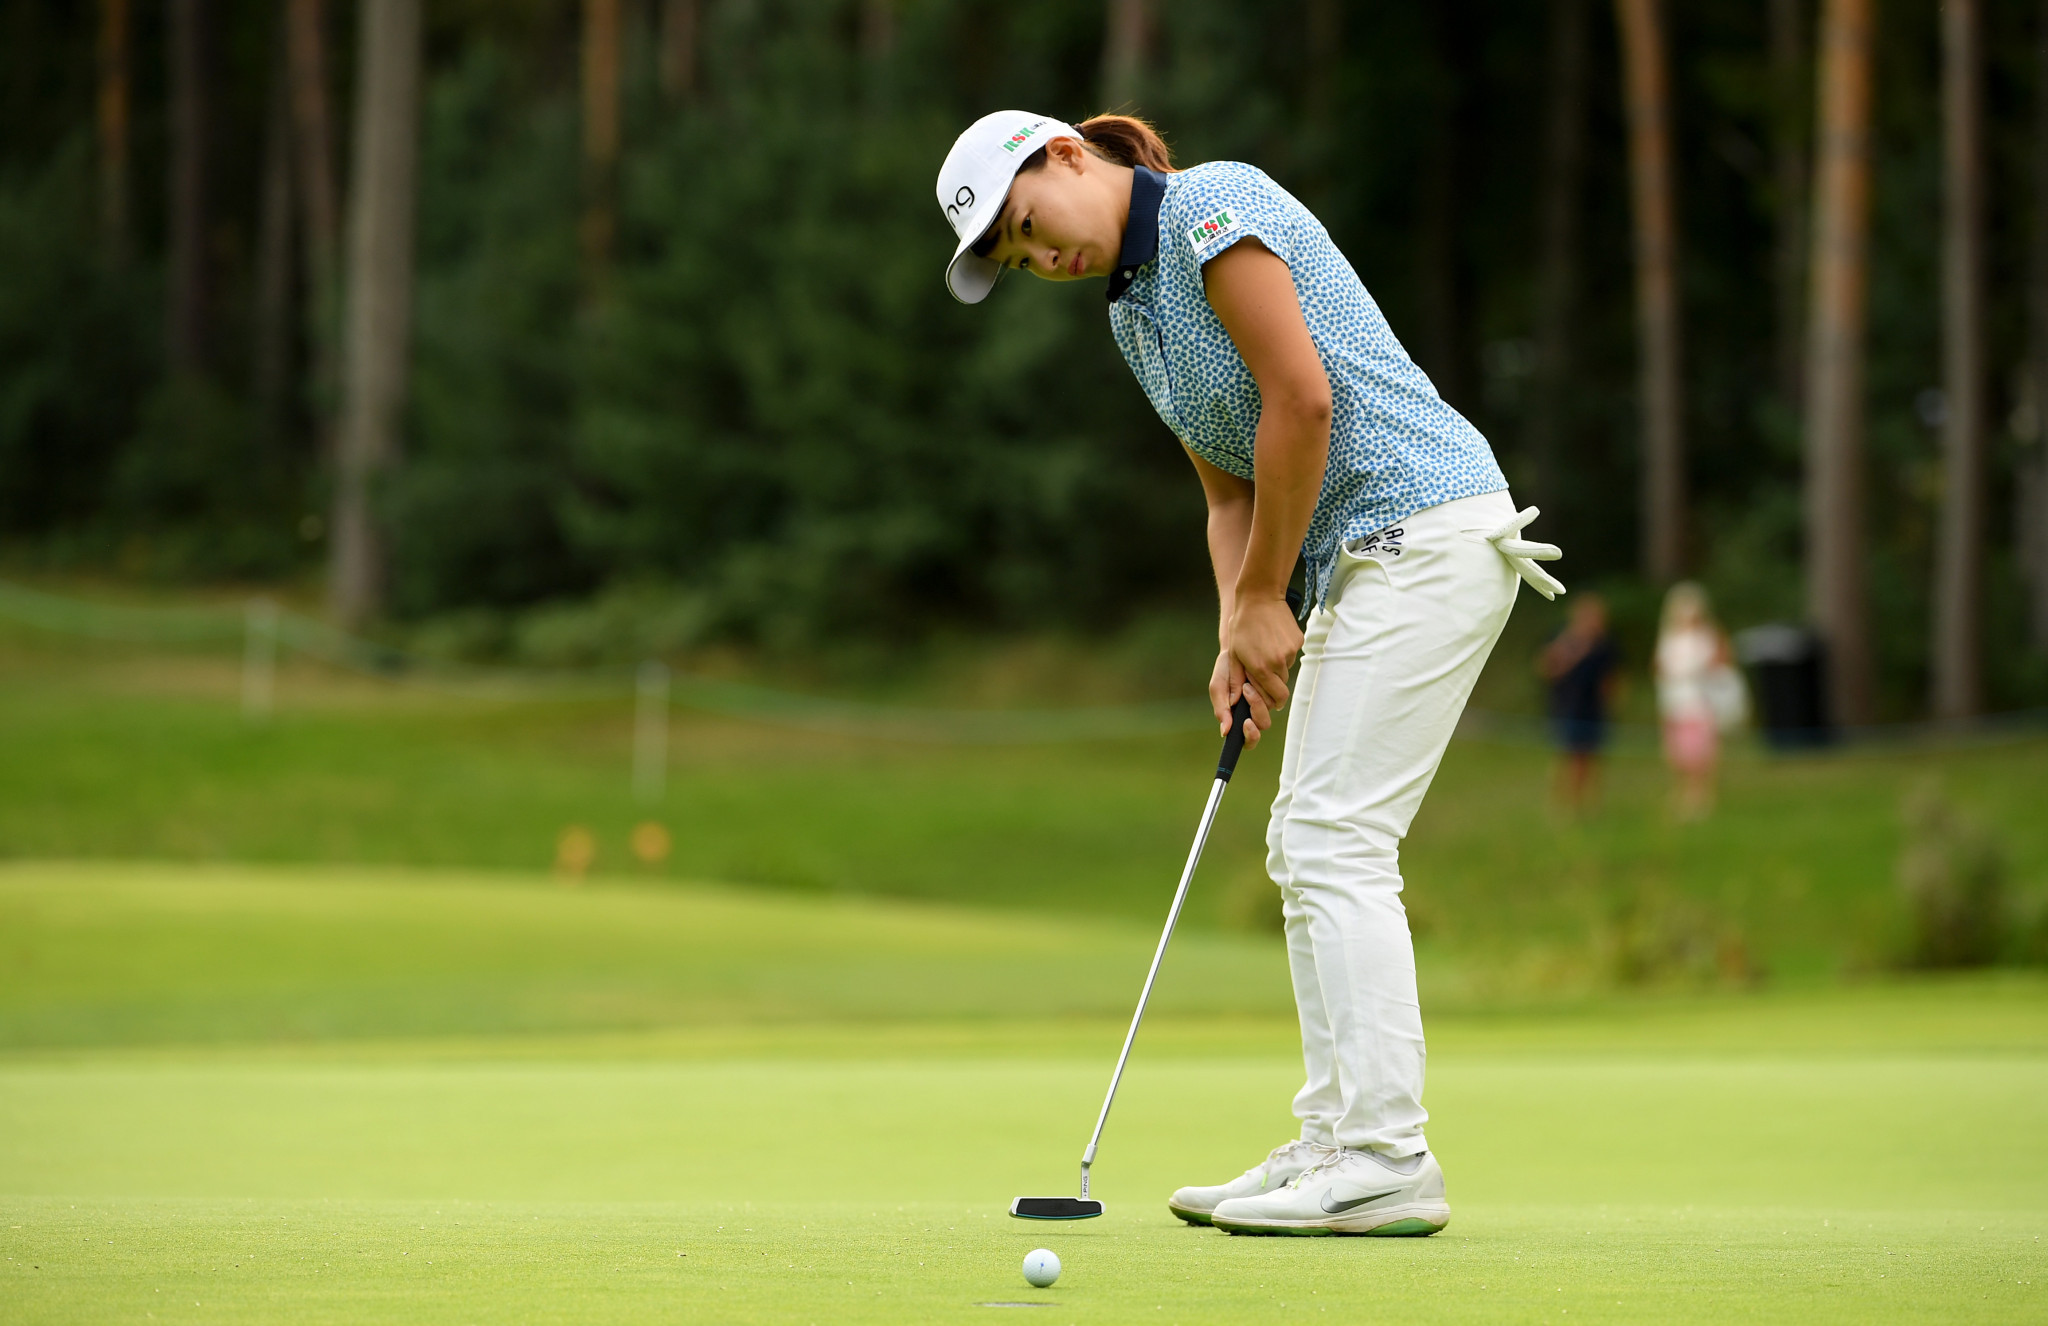 Shibuno surges into two-shot lead at Women's British Open